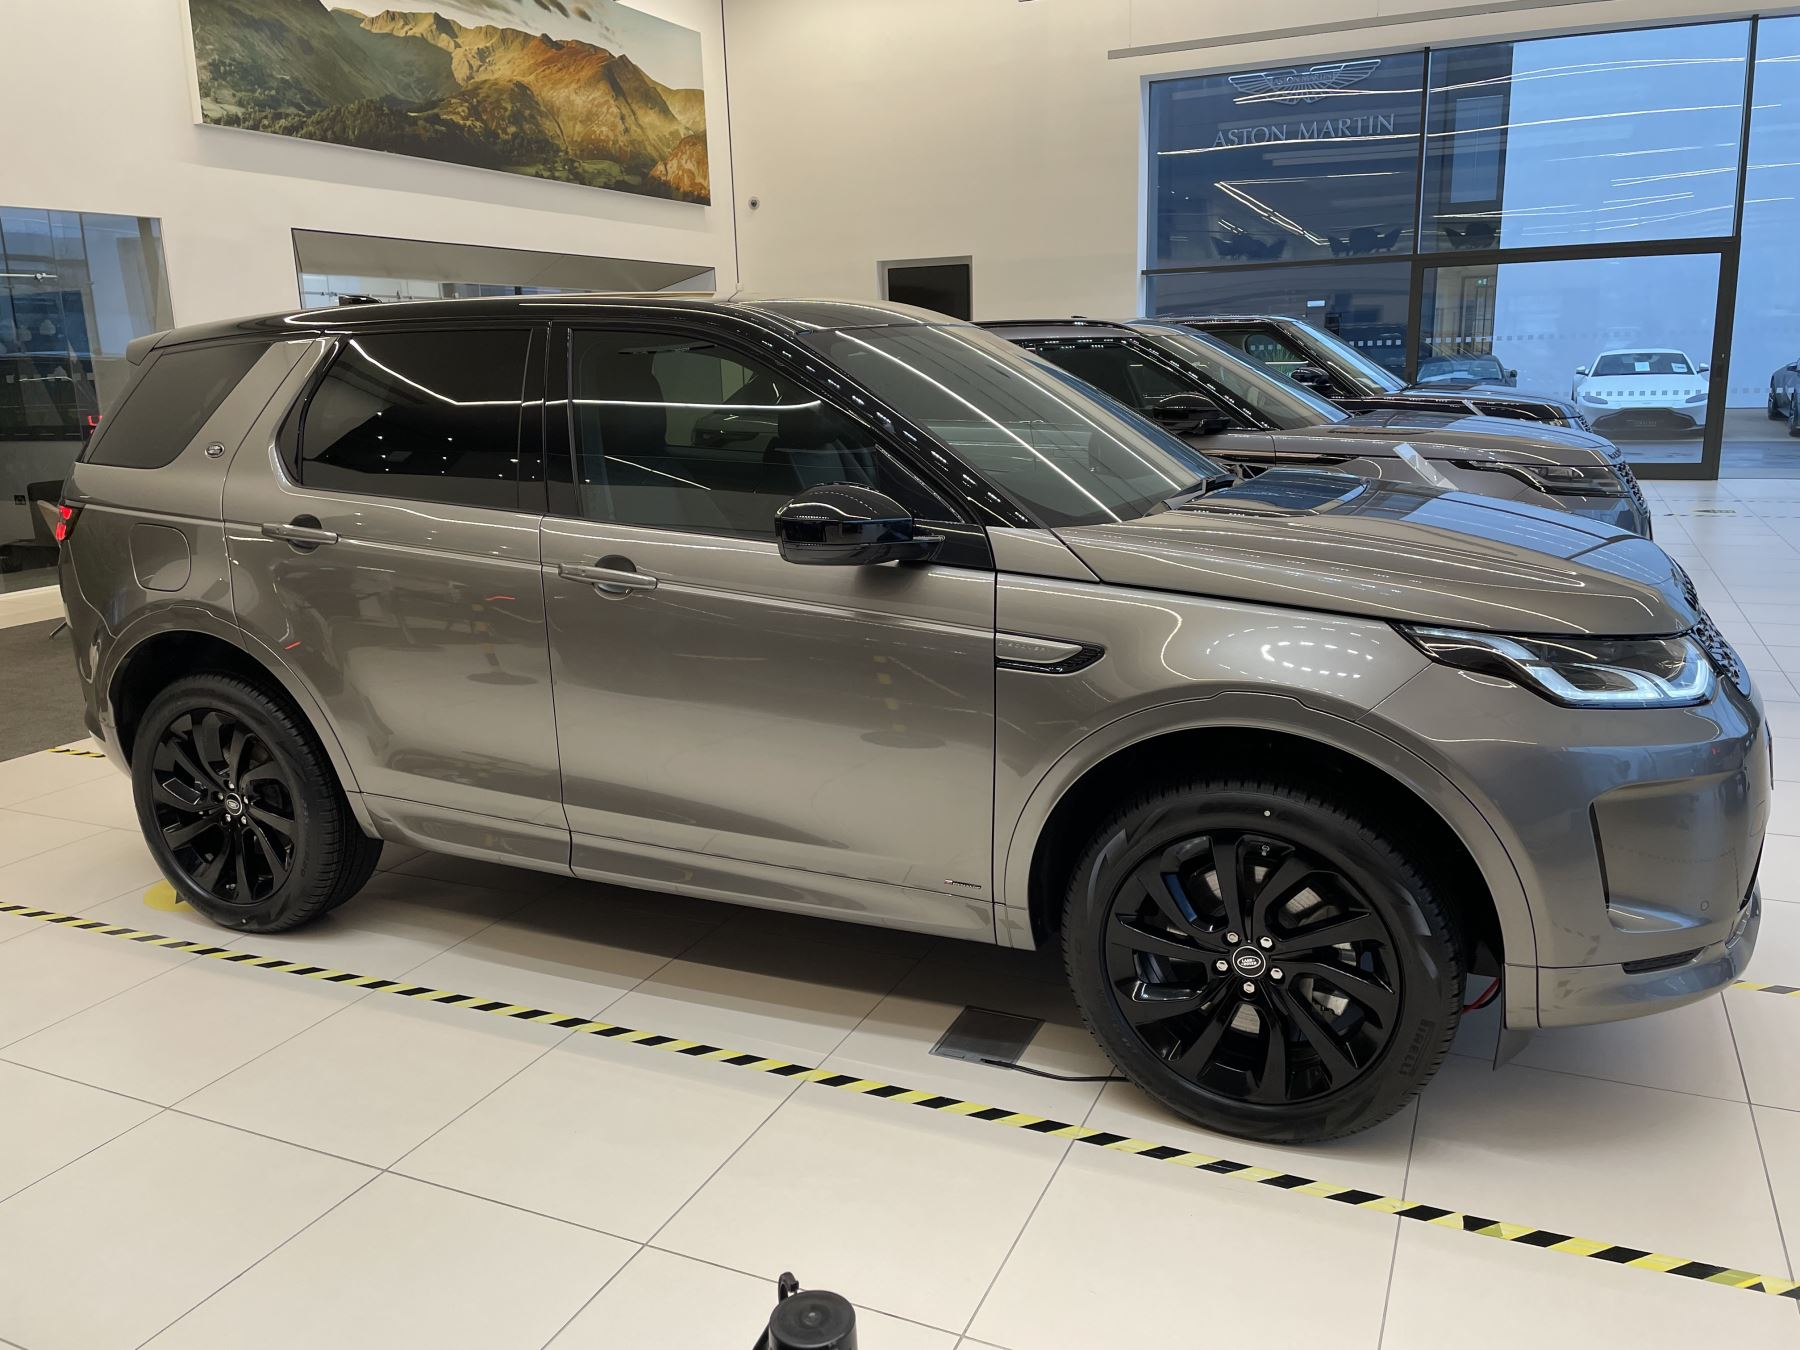 Land Rover Discovery Sport 2.0 P250 R-Dynamic HSE image 2